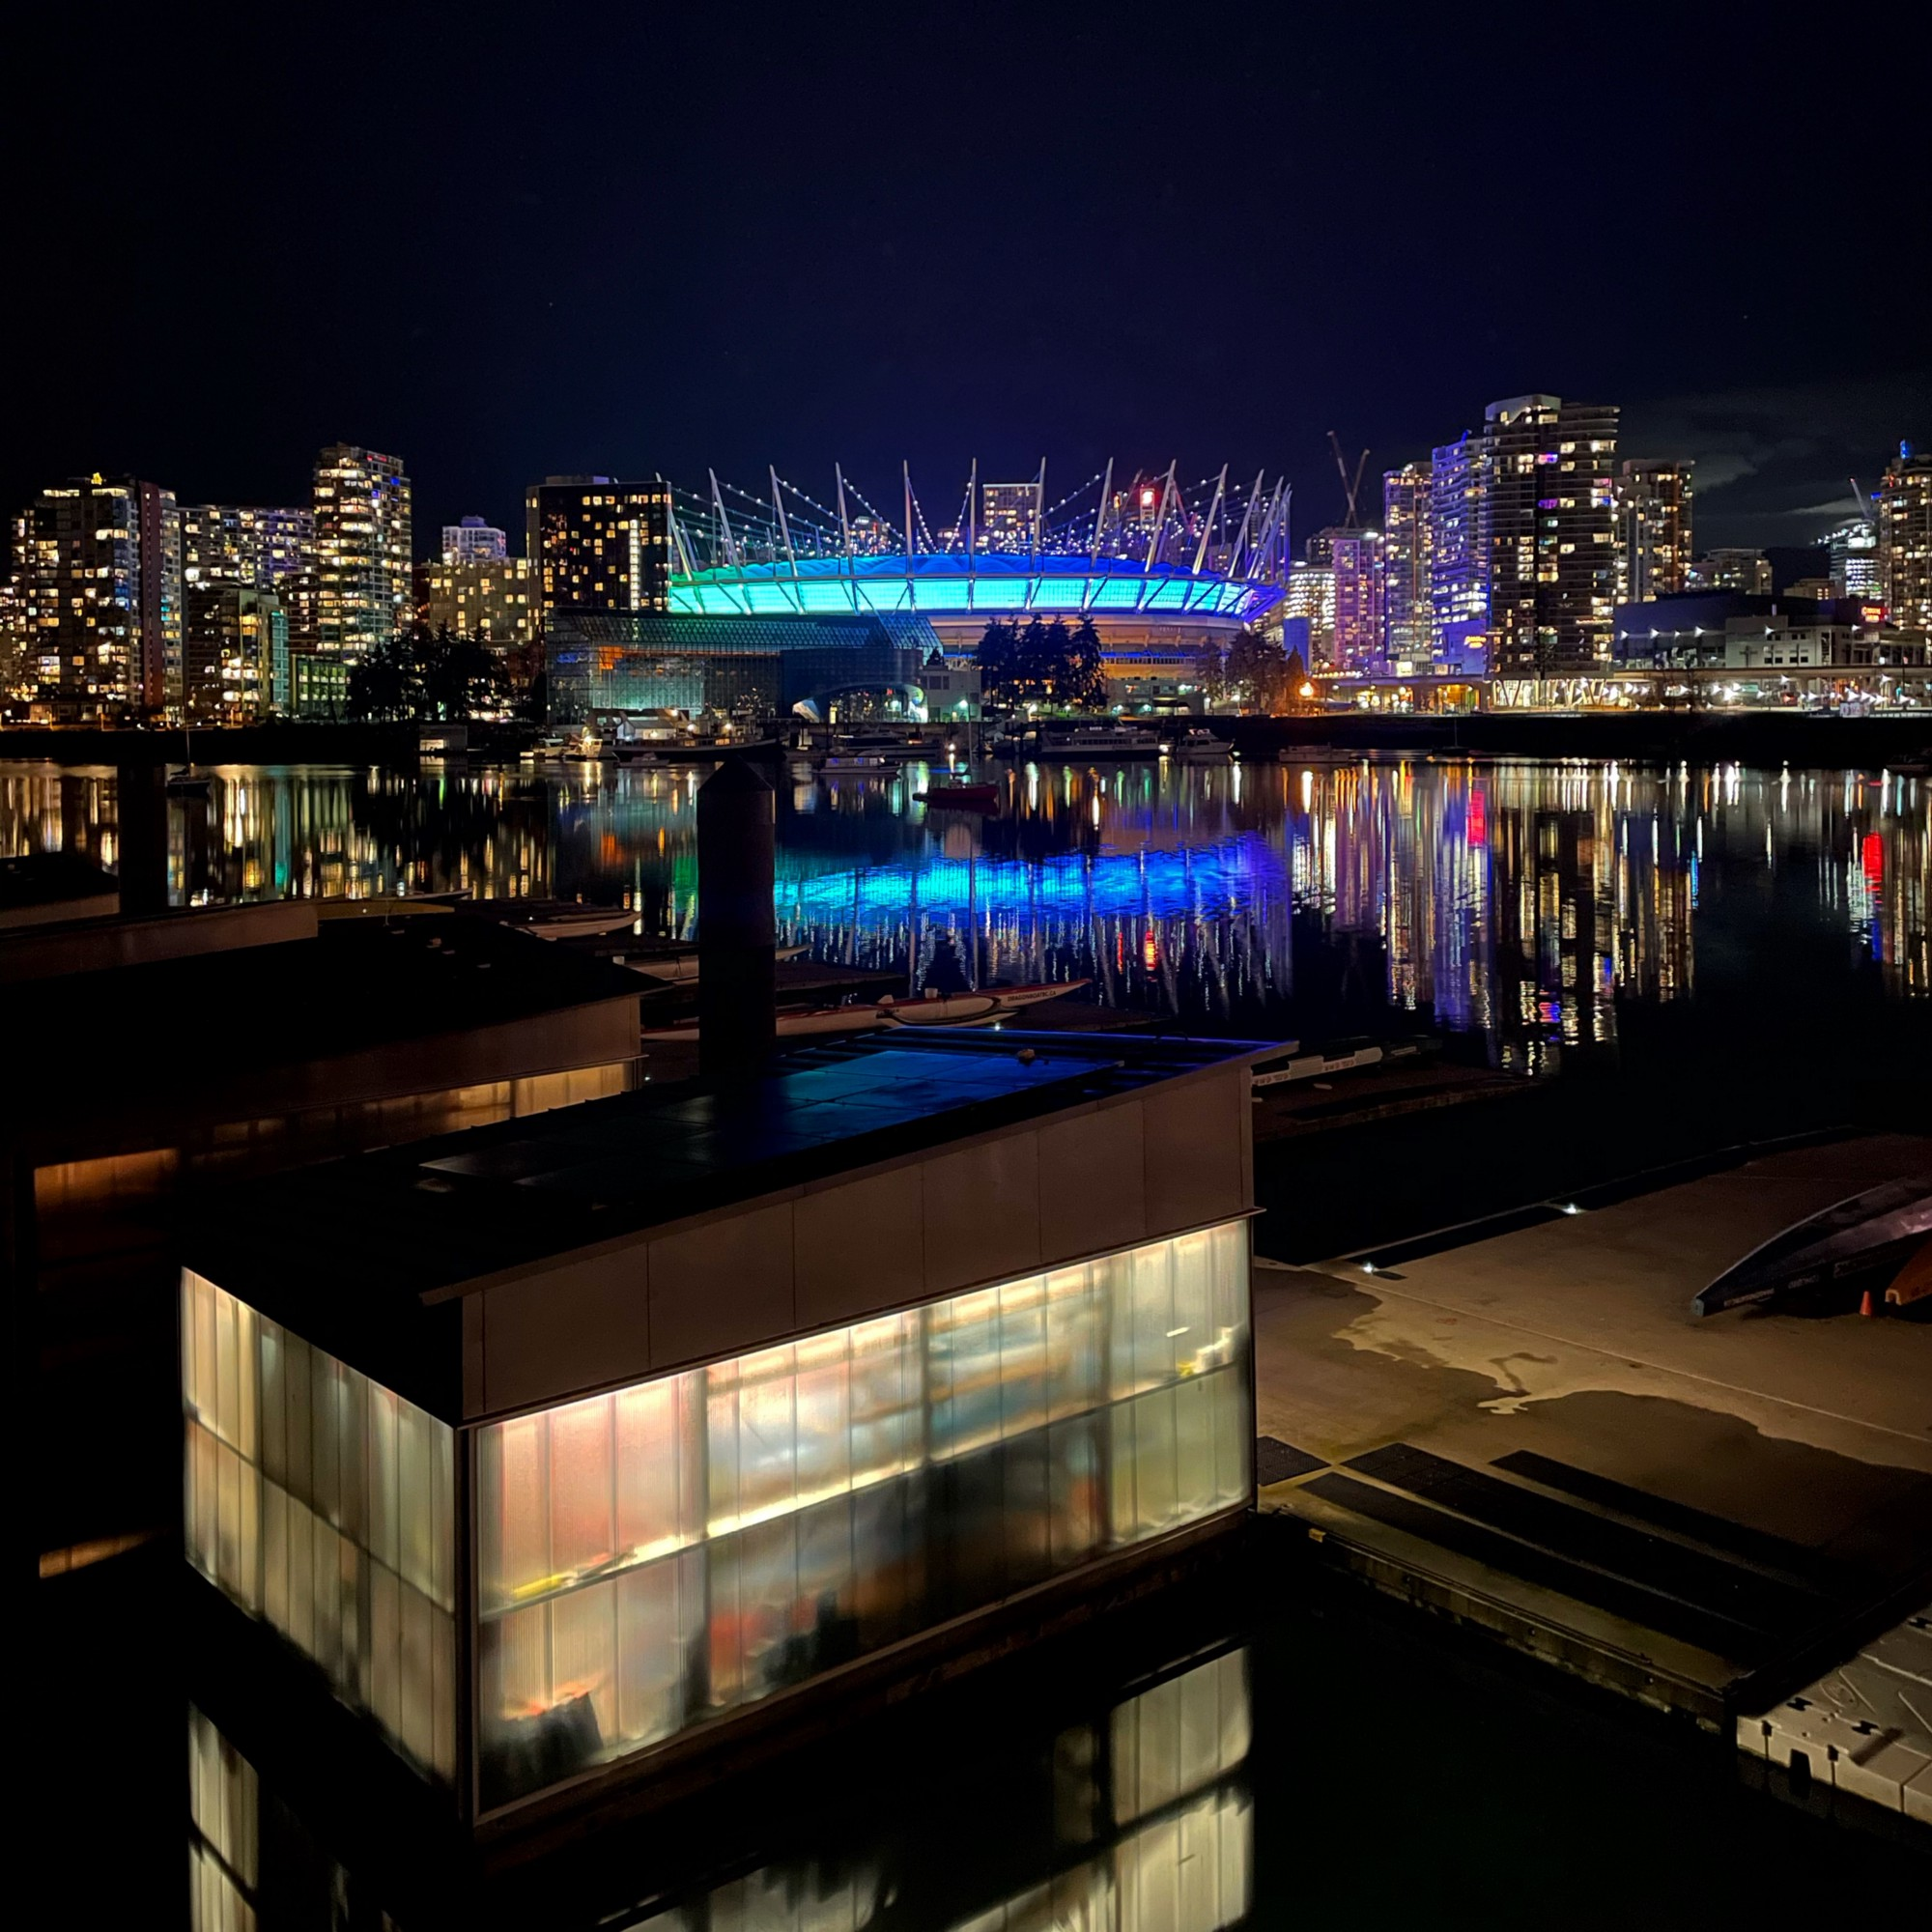 A cityscape at night, showing a lit stadium, hi-rises, and a body of water